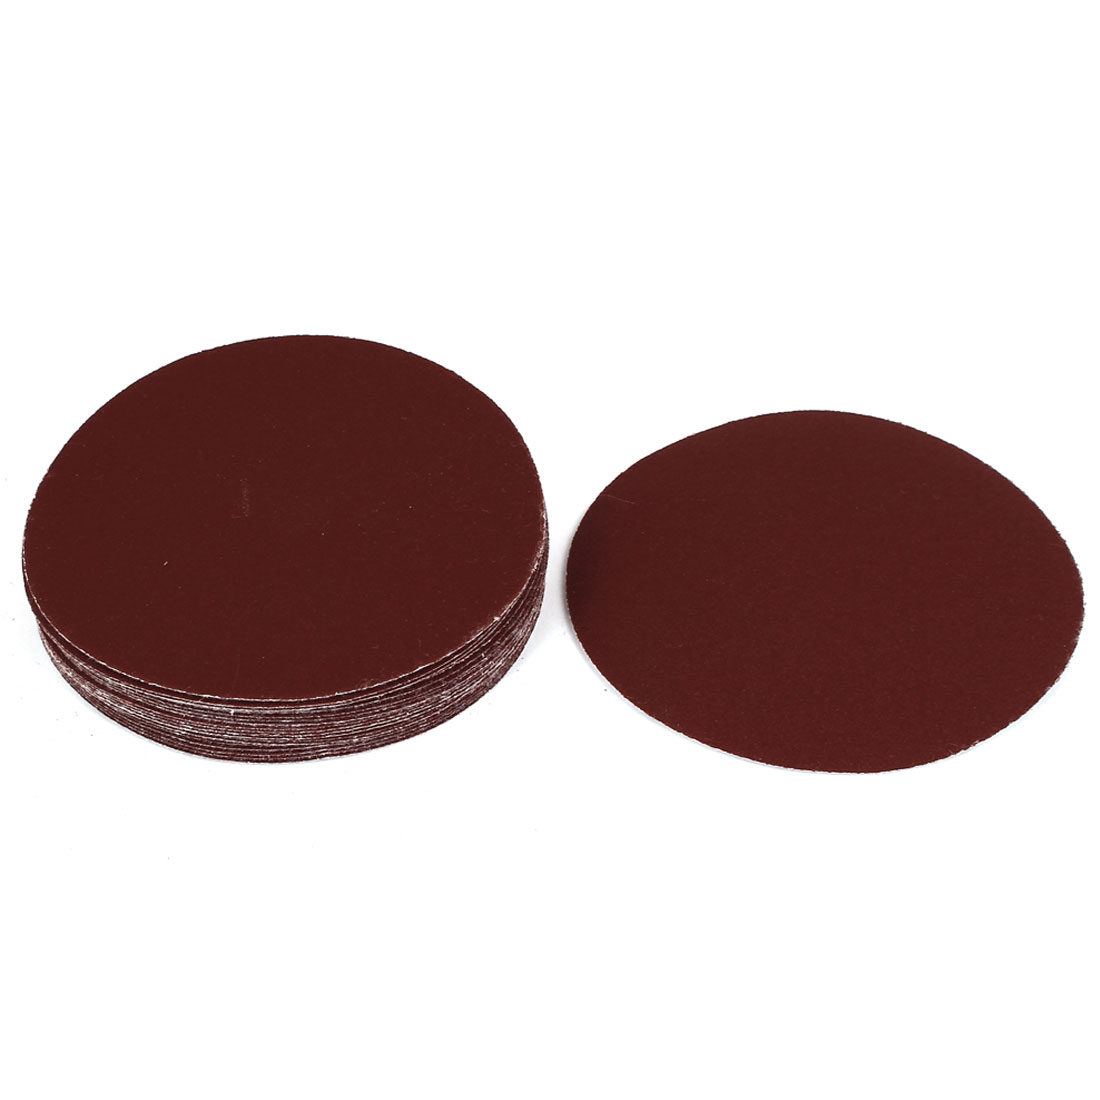 "5"" Dia Polishing Round Abrasive Sanding Sandpaper Sheet Disc 180 Grit 20 Pcs"